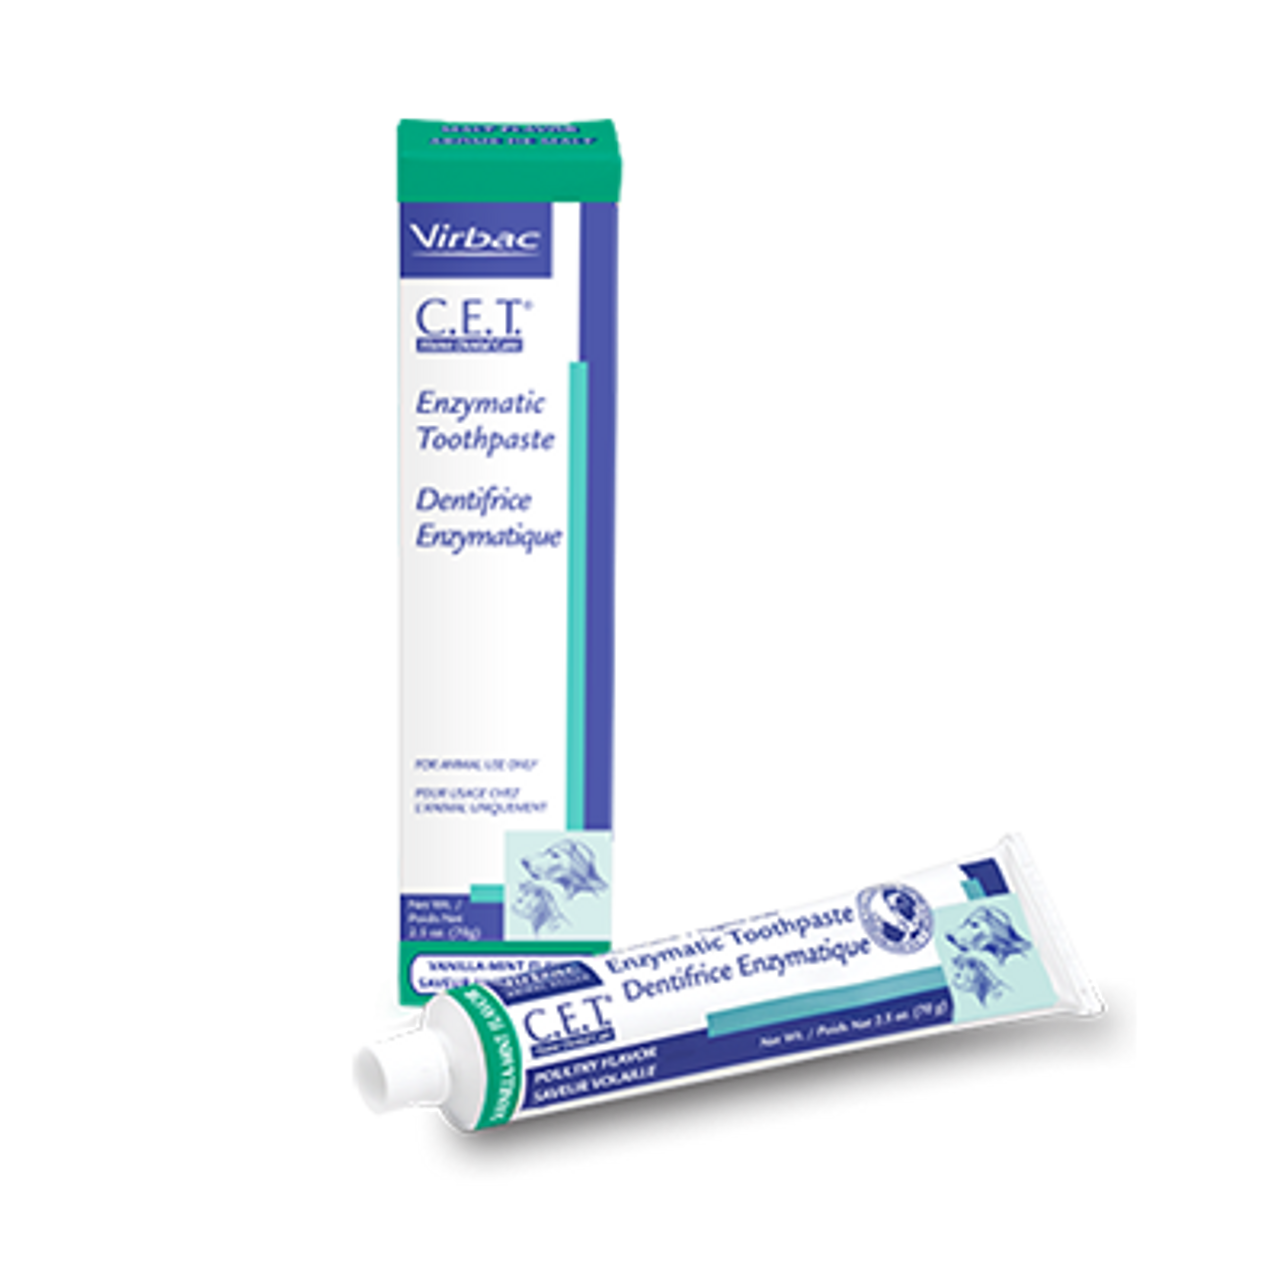 C.E.T. Enzymatic Toothpaste (Vanilla Mint Flavor)